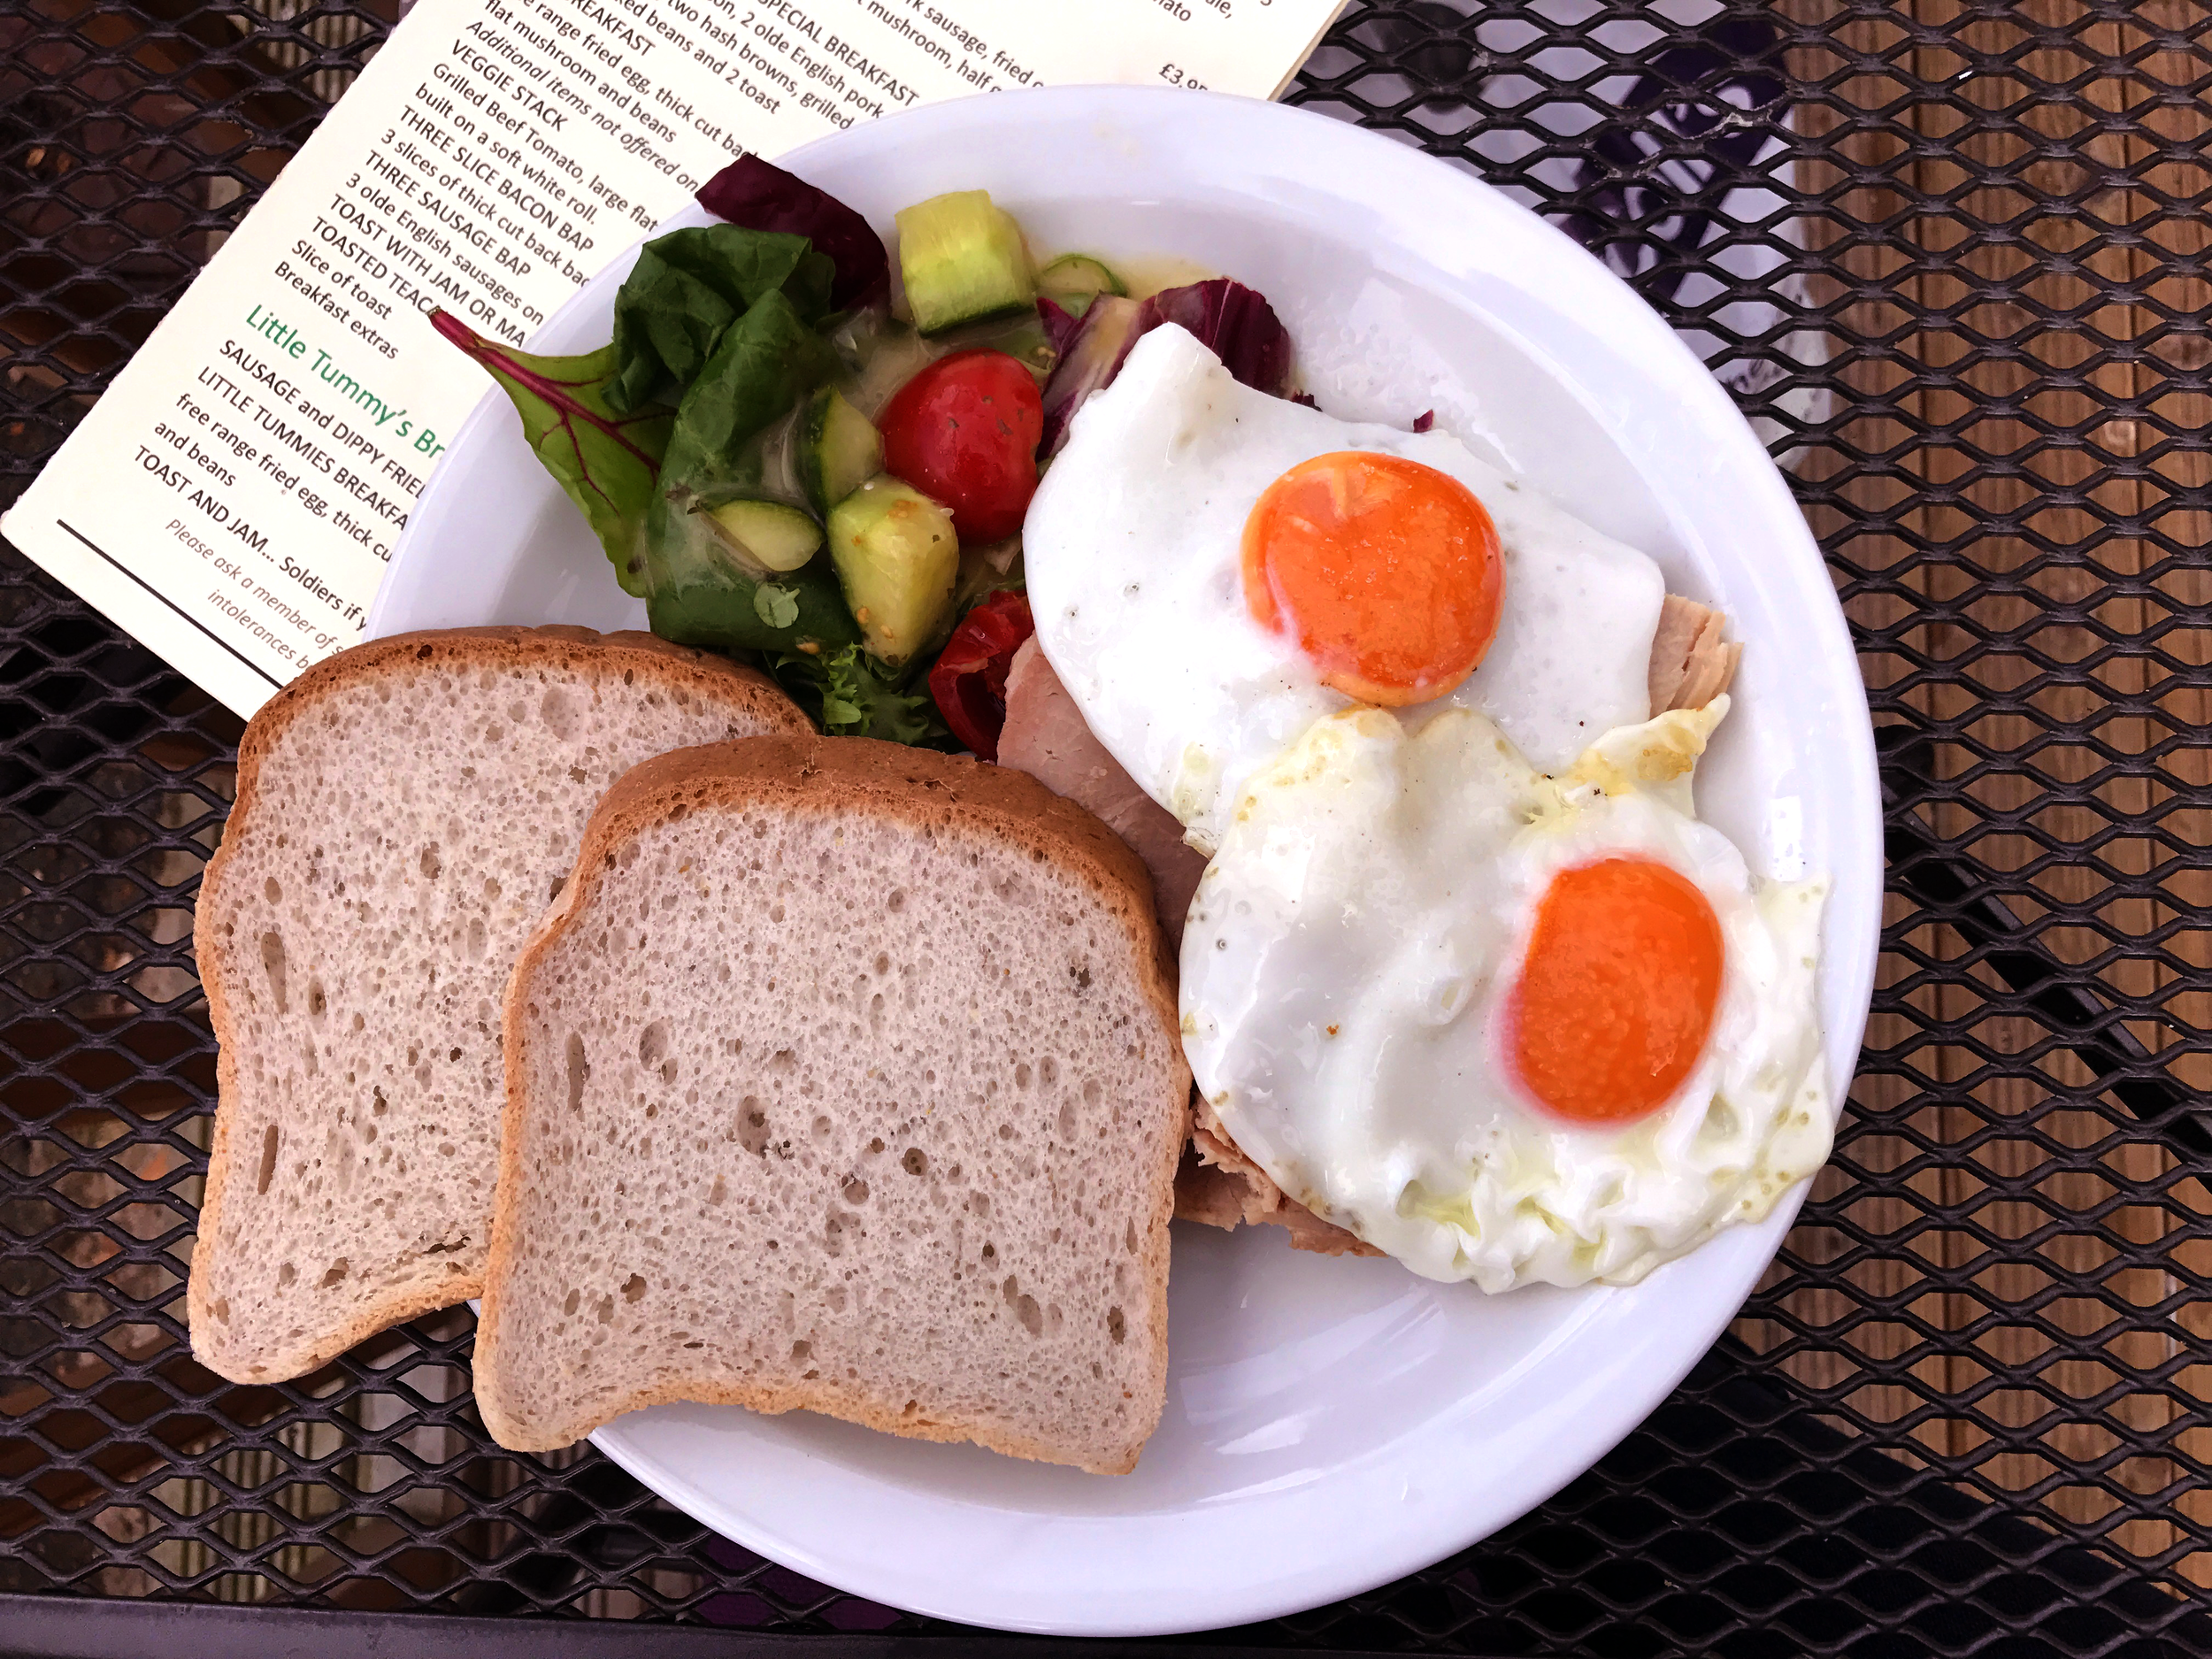 Maple, Mustard, and Apple glazed ham with local eggs and gluten-free bread from Sun Lounge Cafe in Port Sunlight, England.